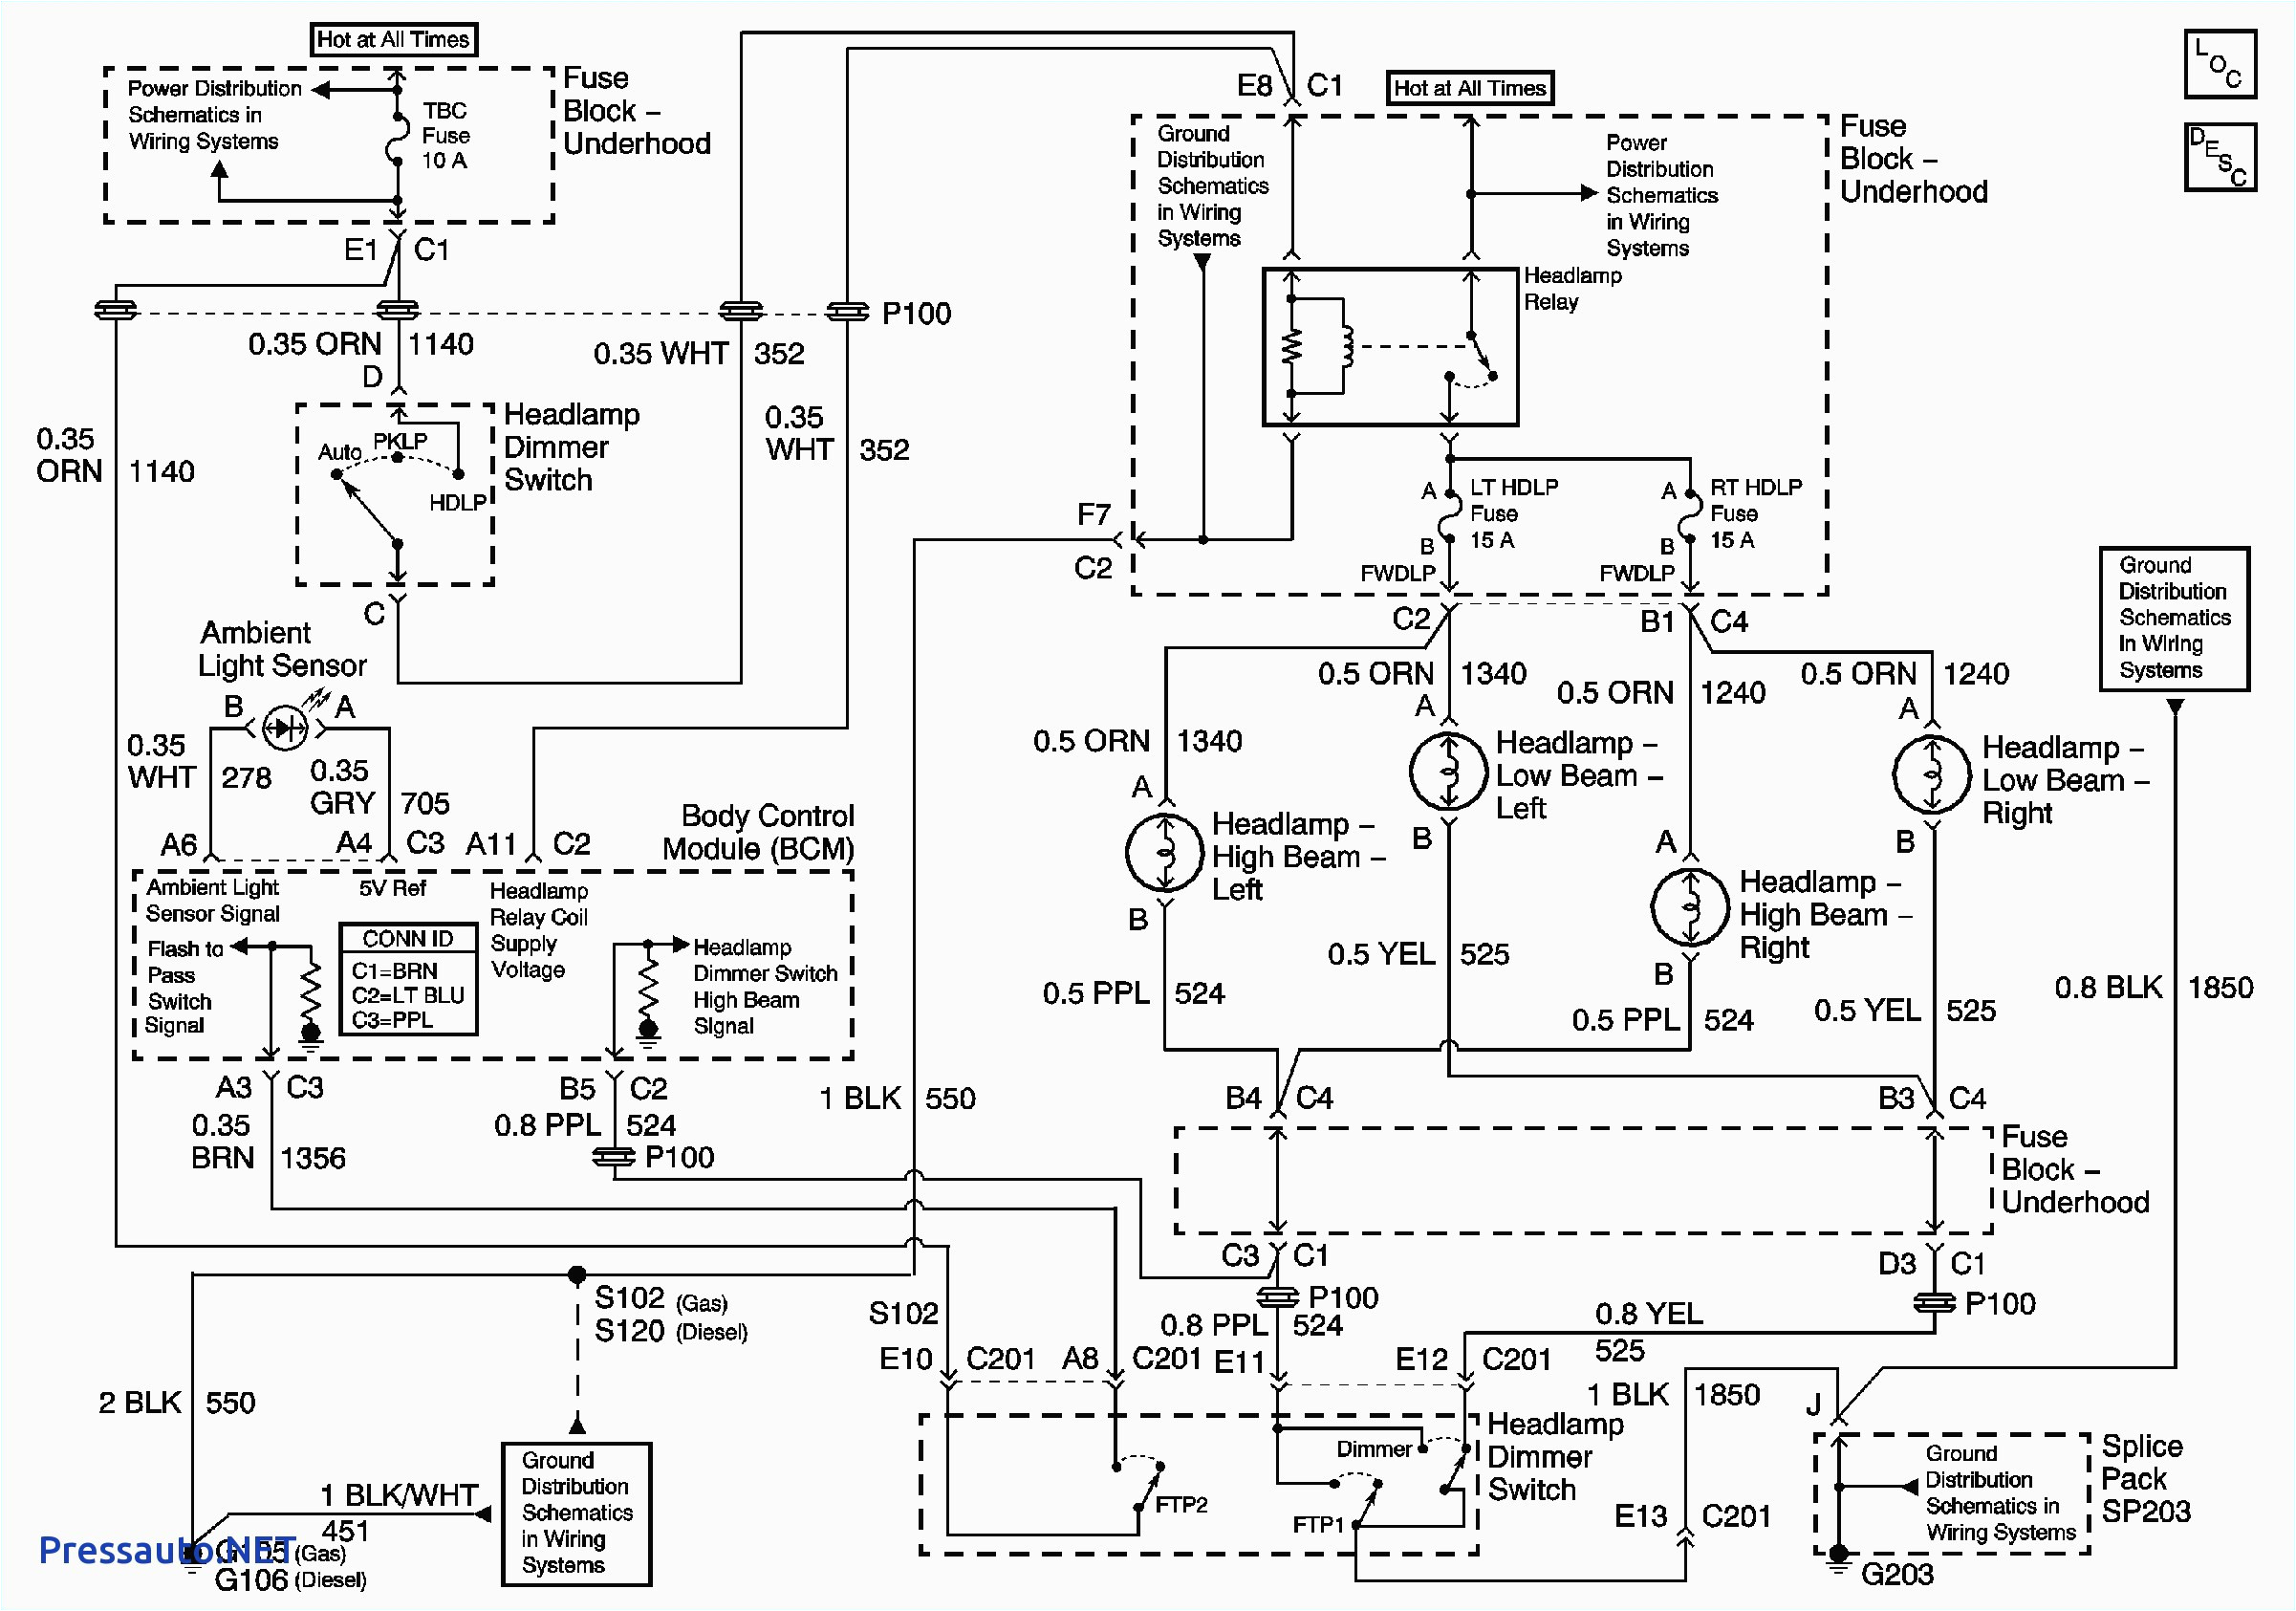 2002 chevy silverado lights diagram blog wiring diagram 2002 chevy silverado front light diagram